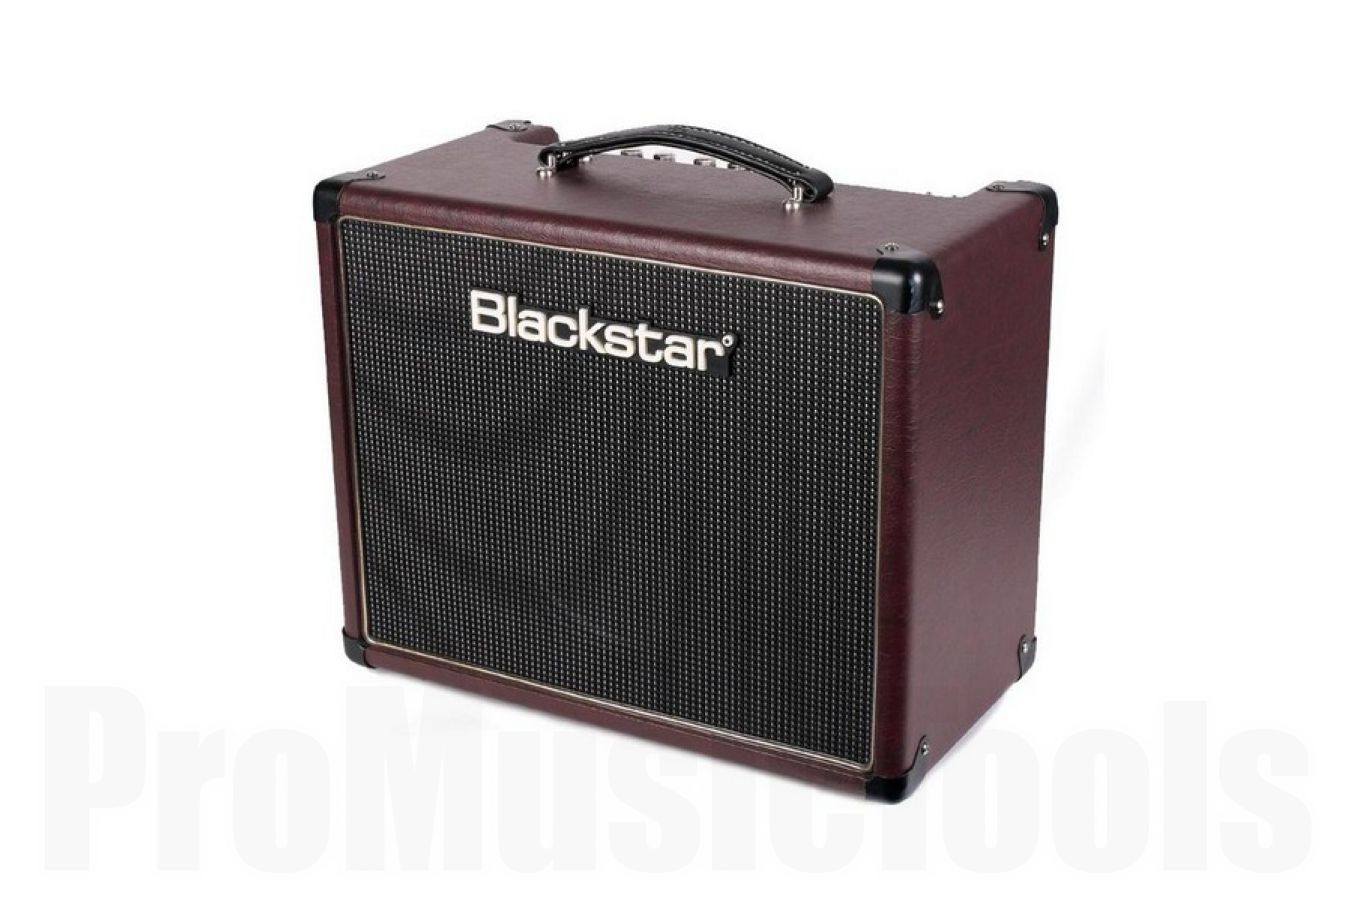 Blackstar HT-5 Combo - Vintage Limited Edition